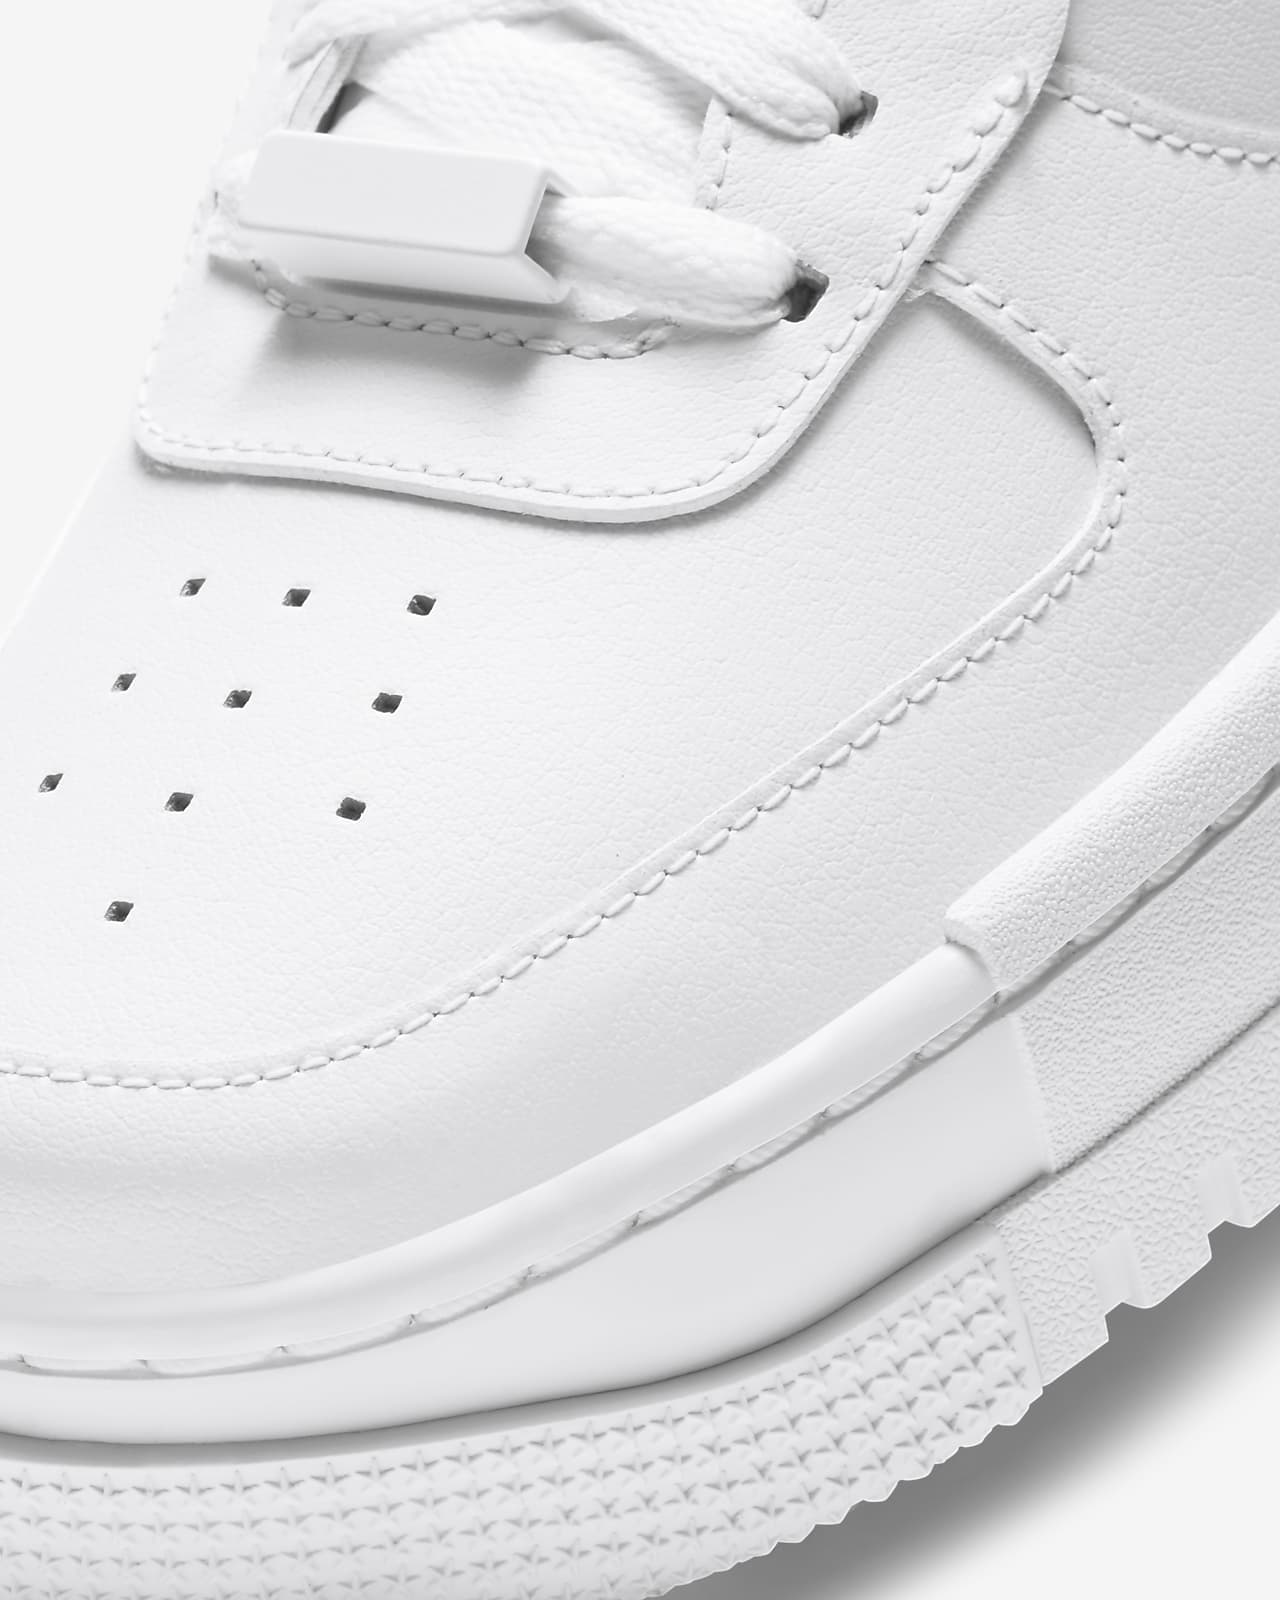 Chaussure Nike Air Force 1 Pixel pour Femme. Nike LU